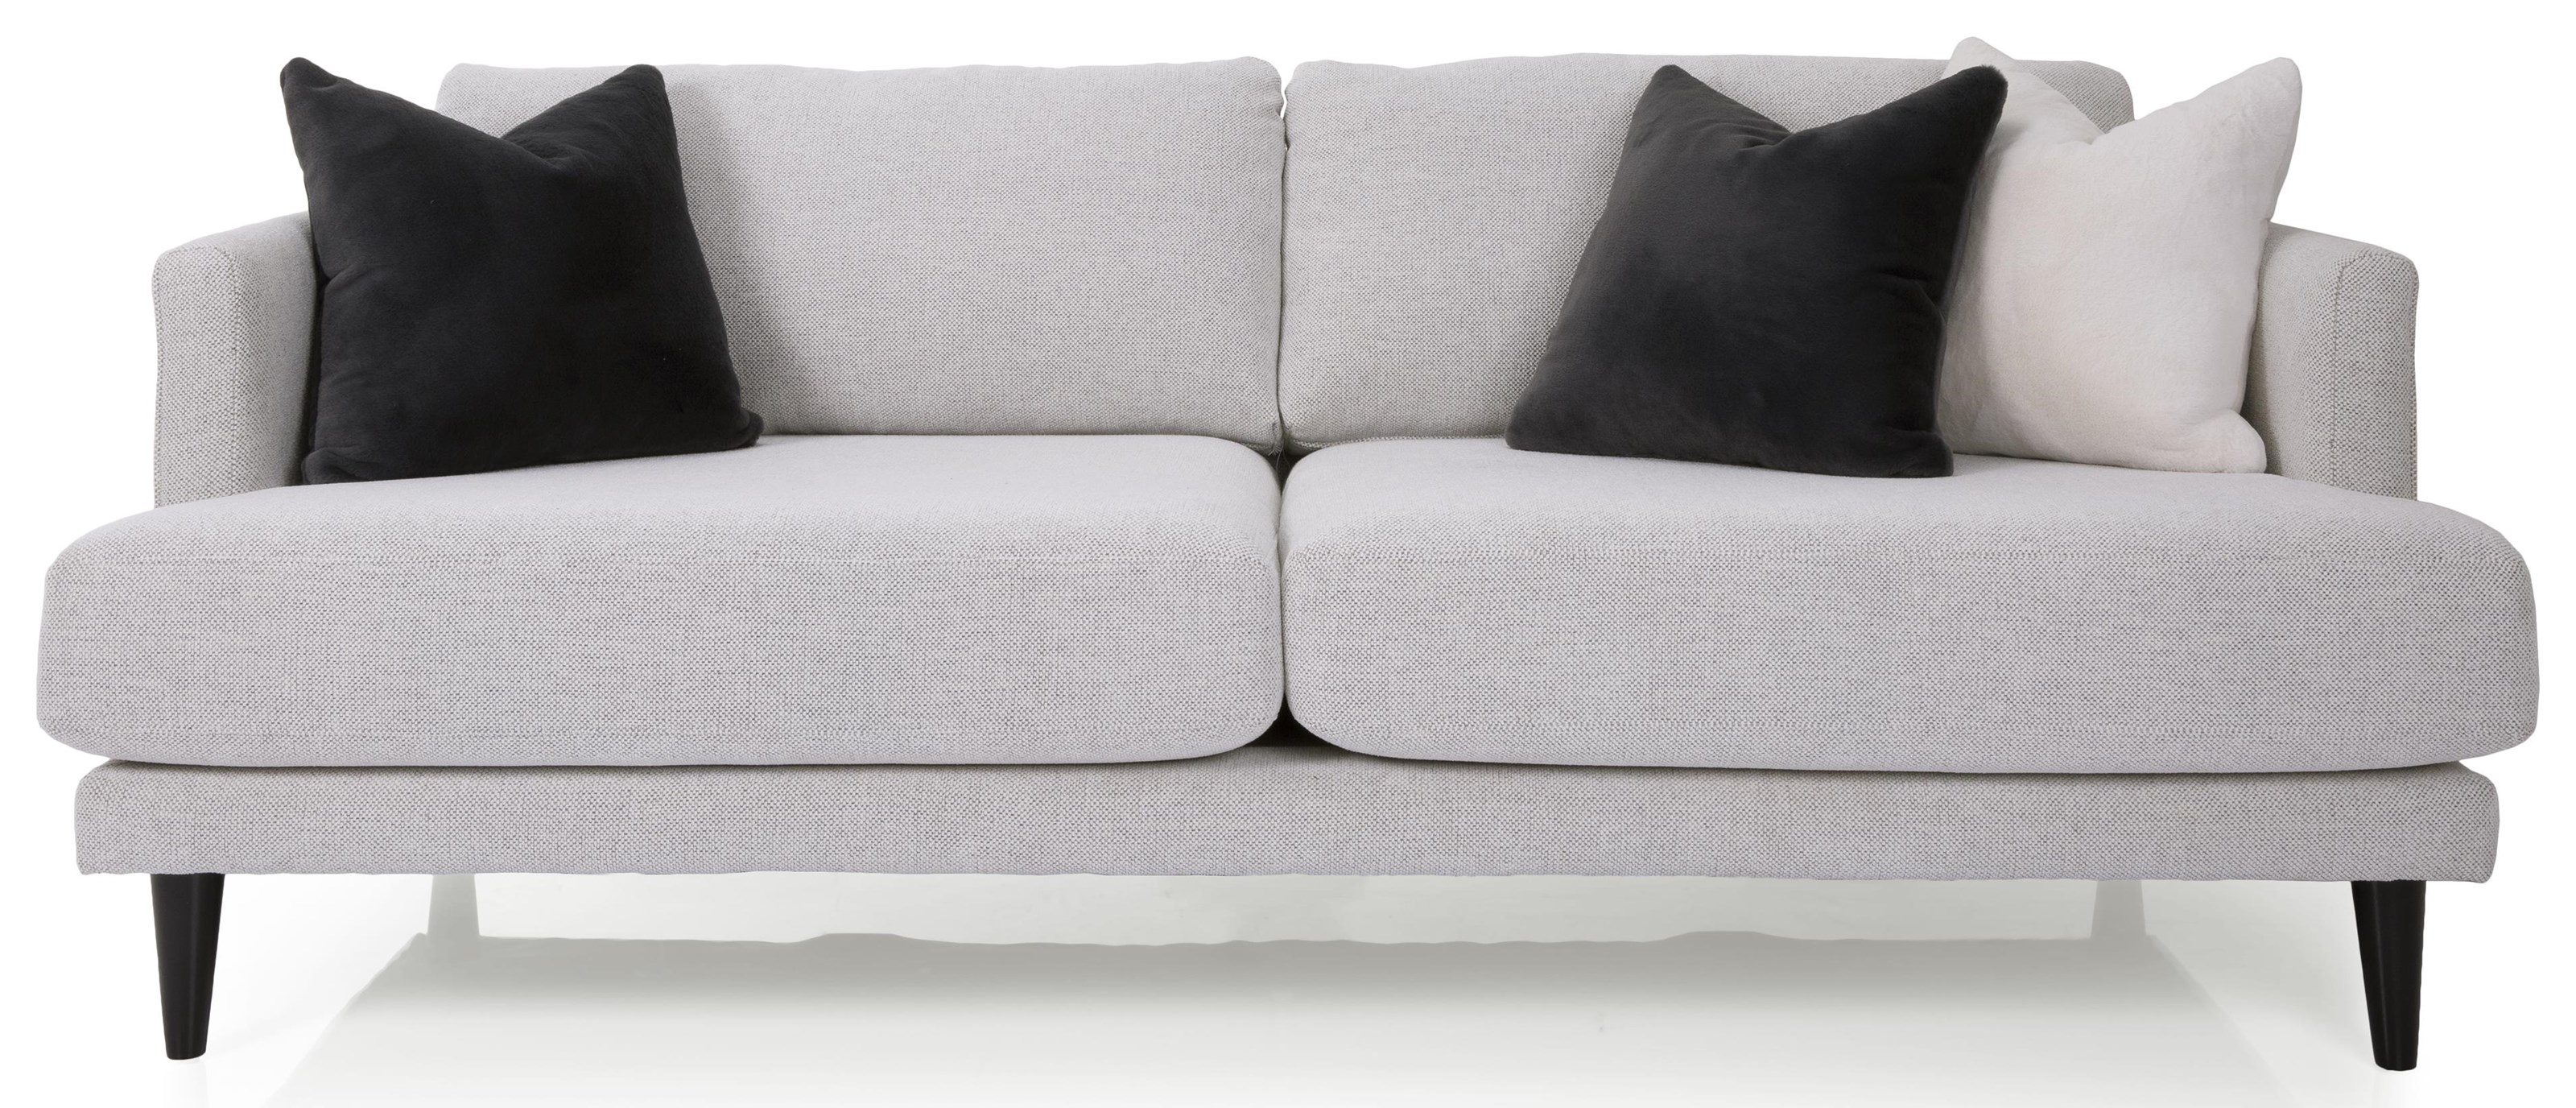 Fargo Sofa by Taelor Designs at Bennett's Furniture and Mattresses